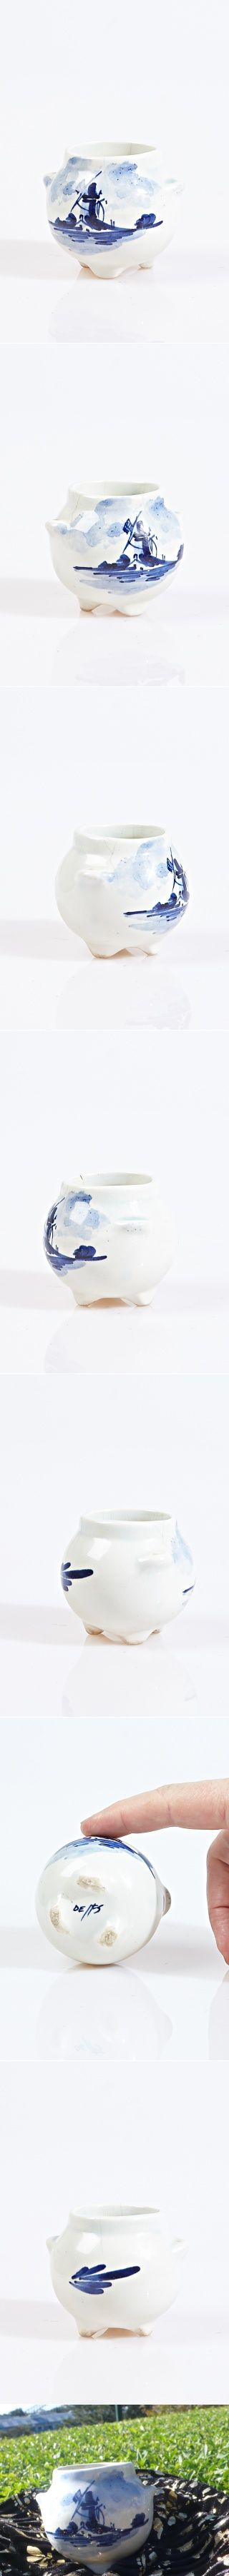 delft miniature vase now at auction on ebay